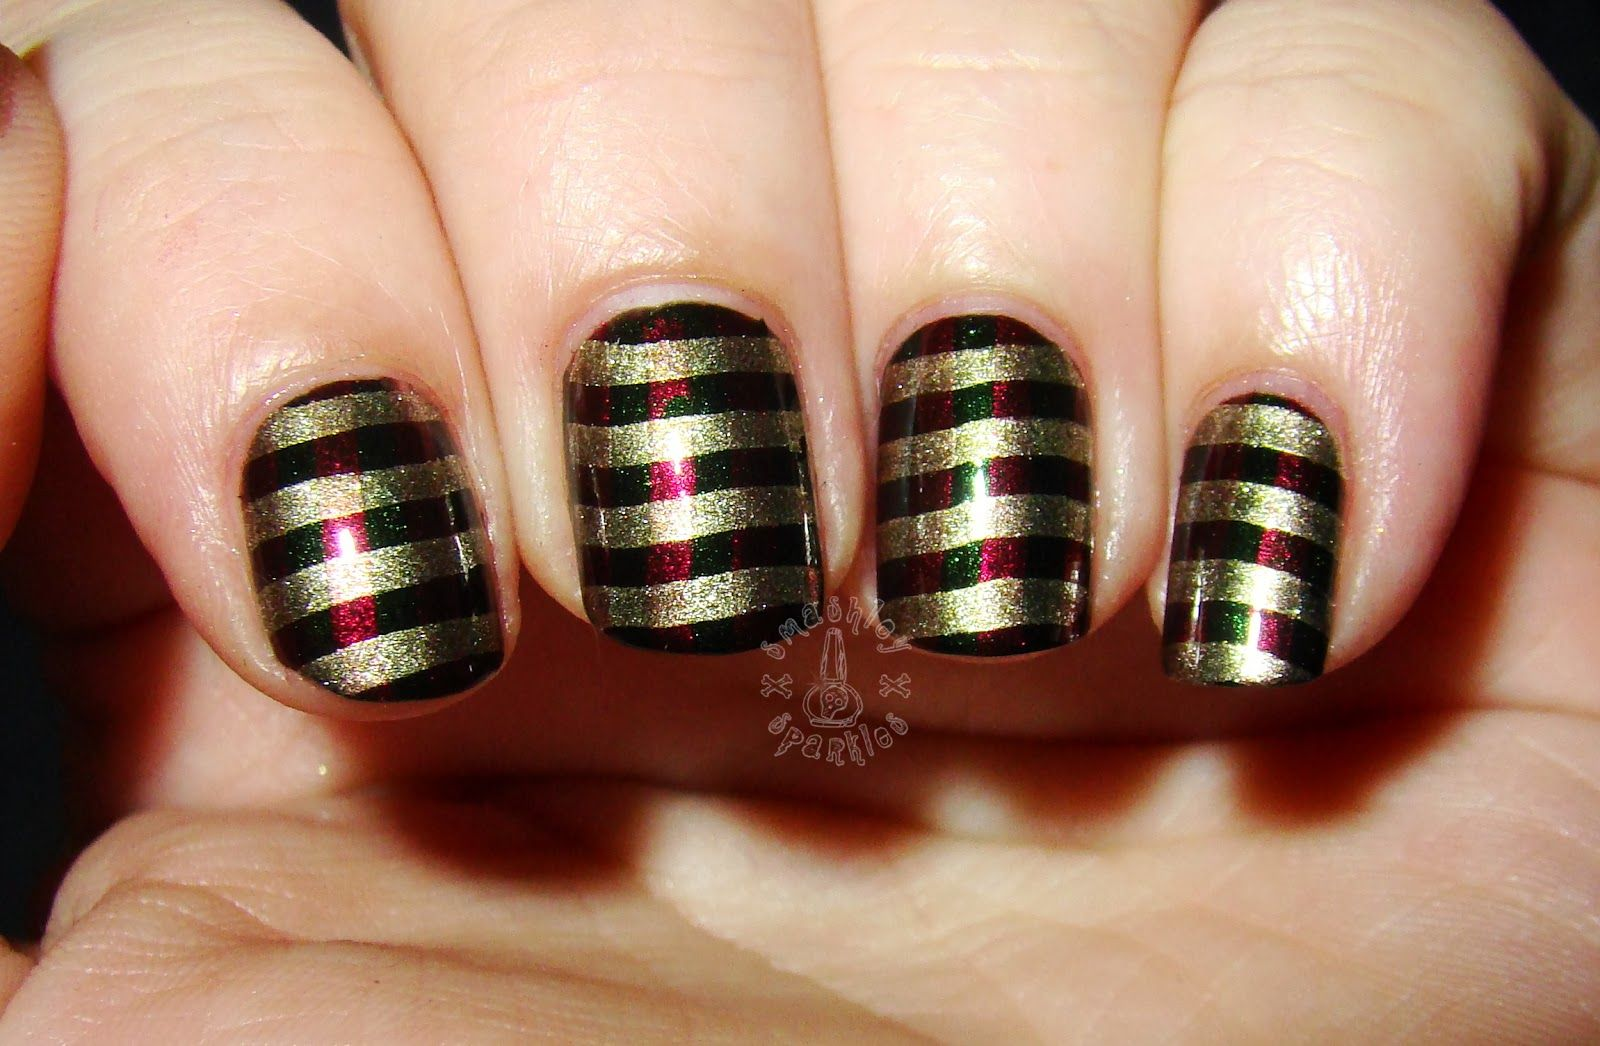 A Christmas nail design in red,green and gold stripes